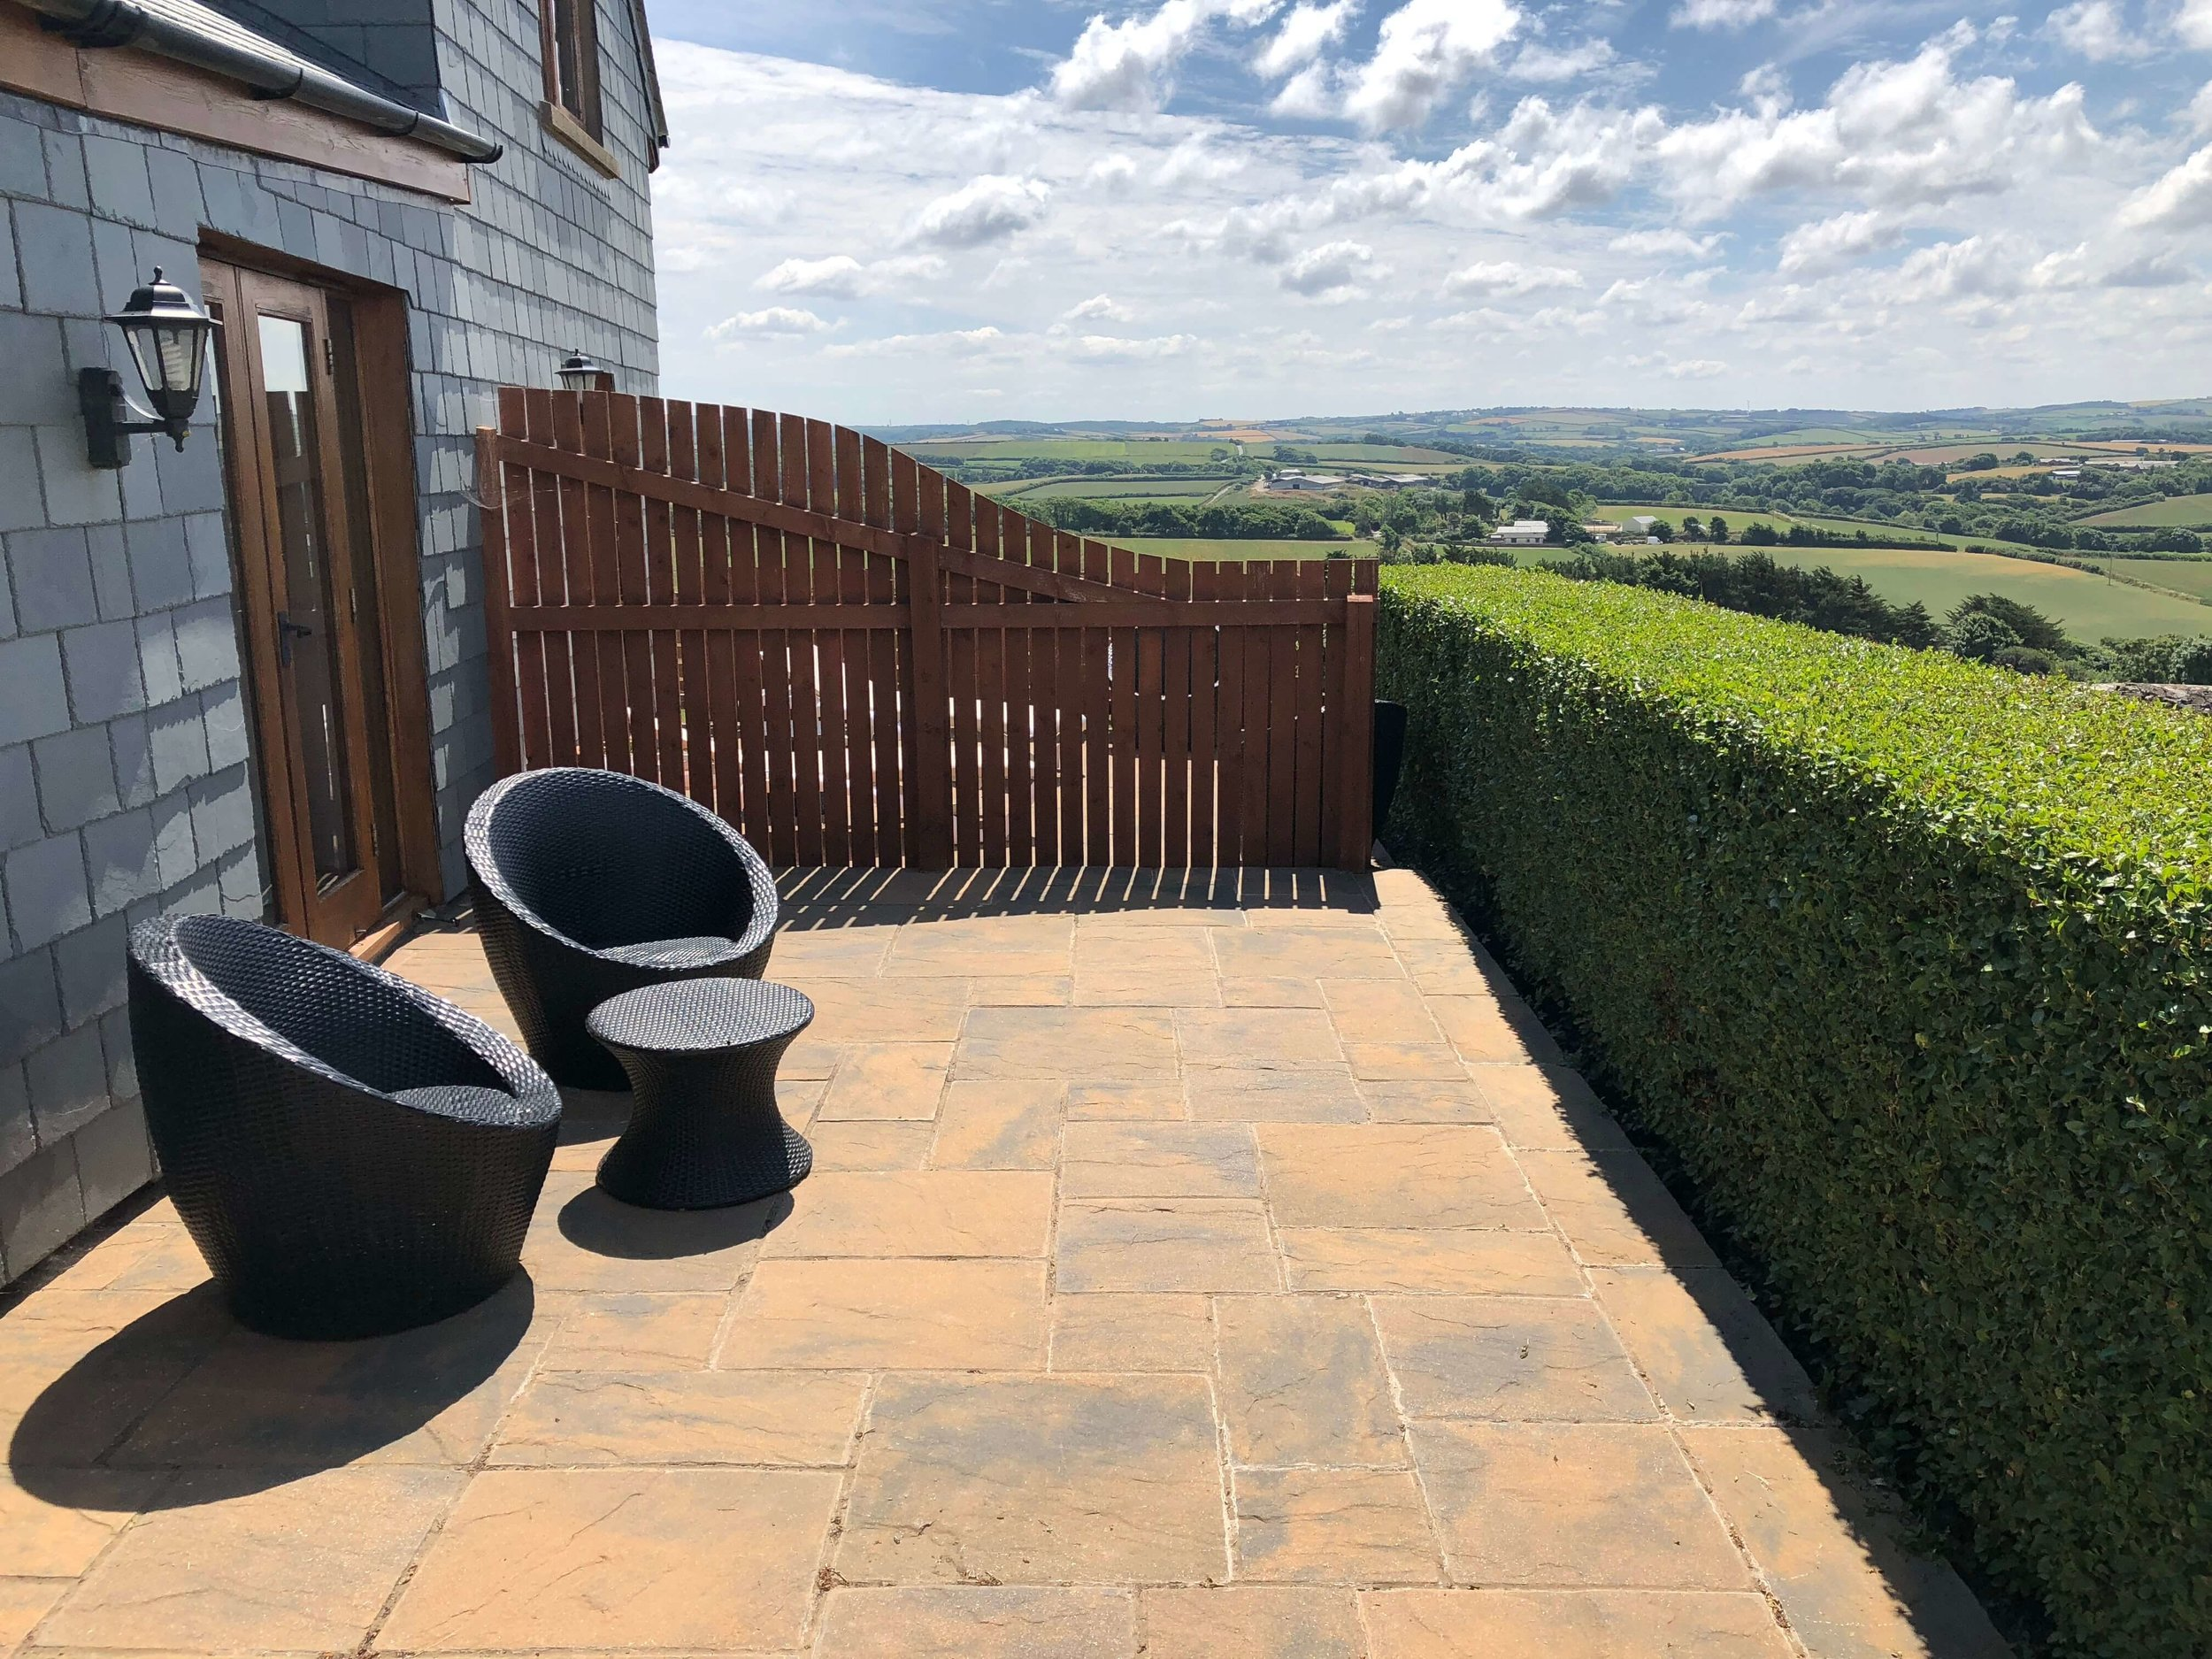 Spectacular sea and countryside views towards Widemouth Bay from the patio area